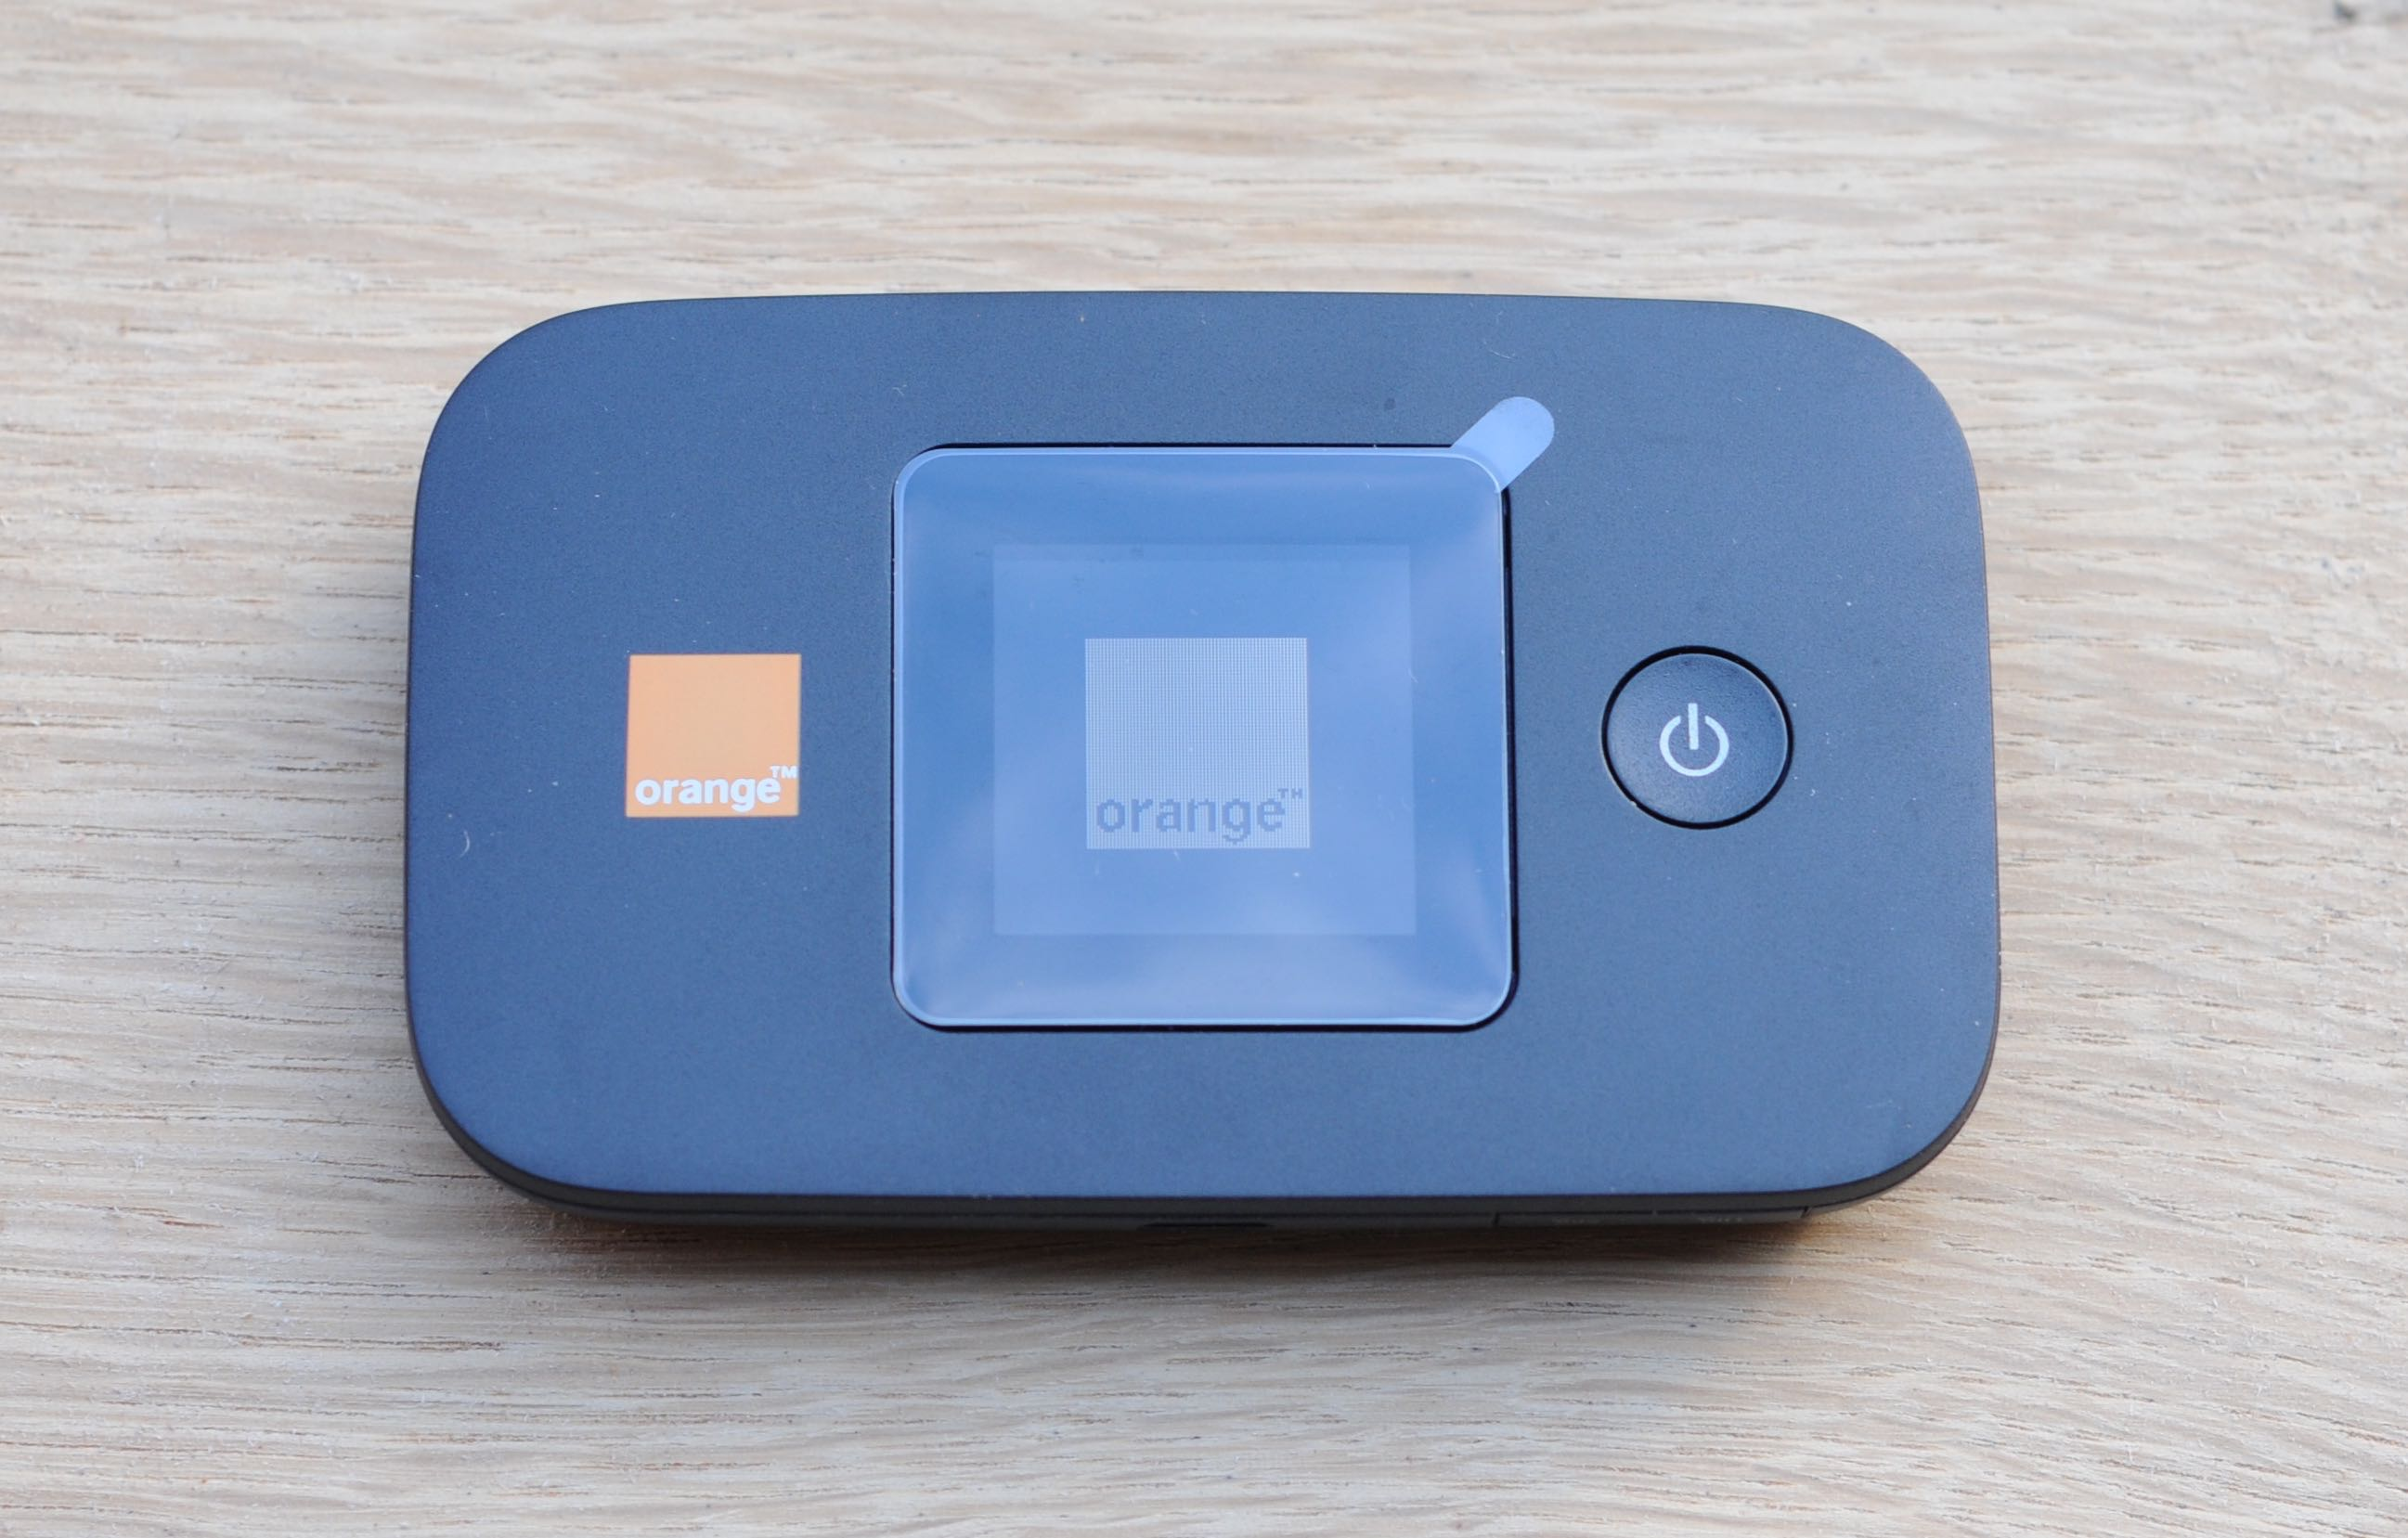 Want a MiFi? Here are the top 5 MiFi deals in Uganda with prices and